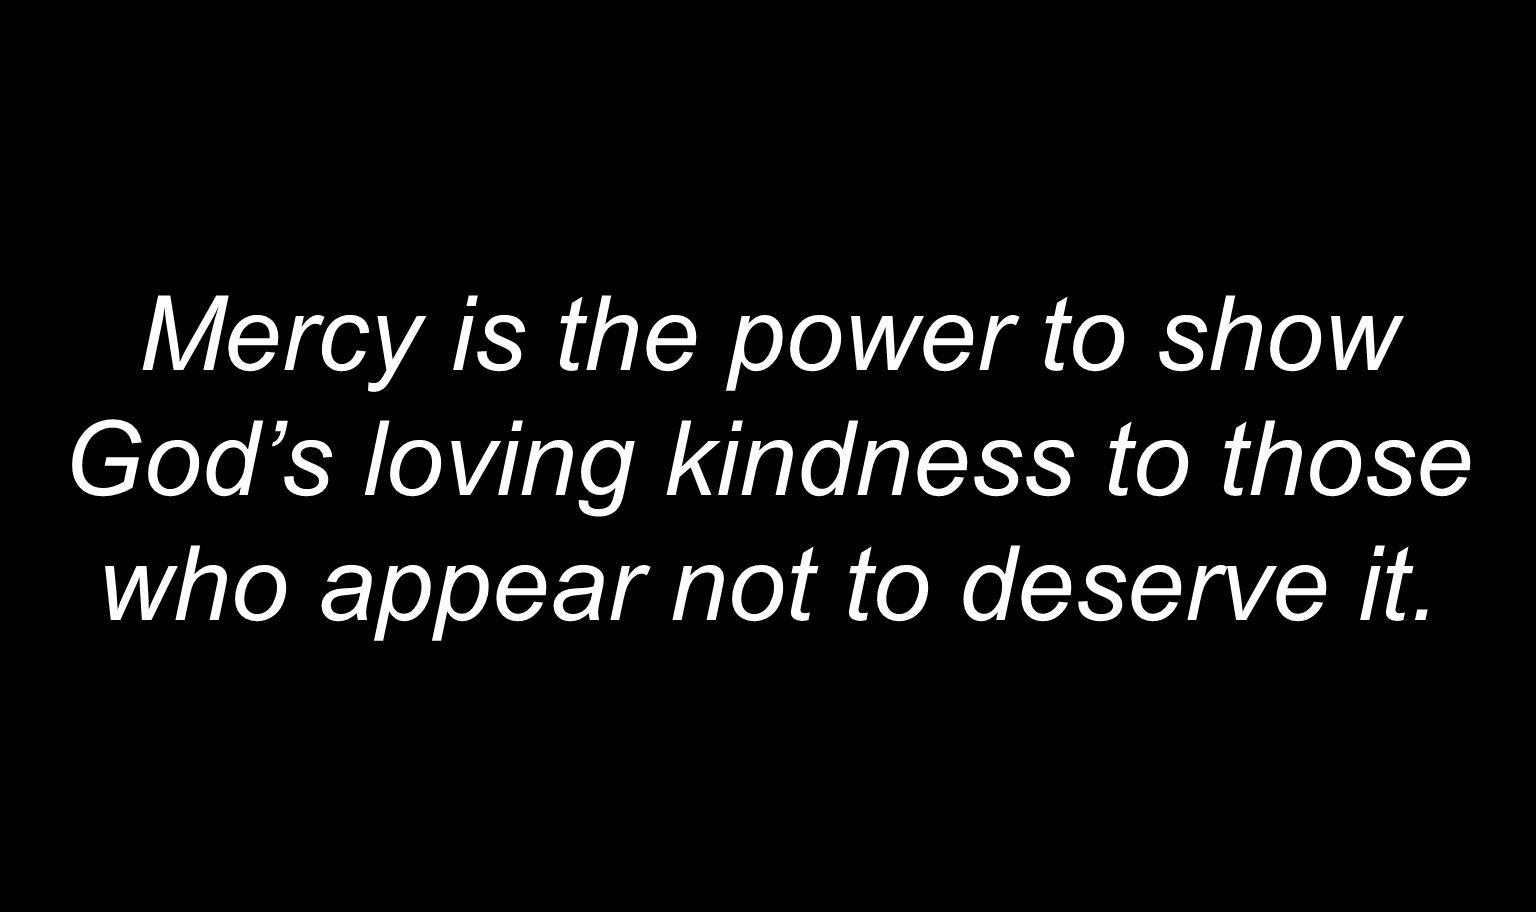 Mercy is the power to show God's loving kindness to those who appear not to deserve it.